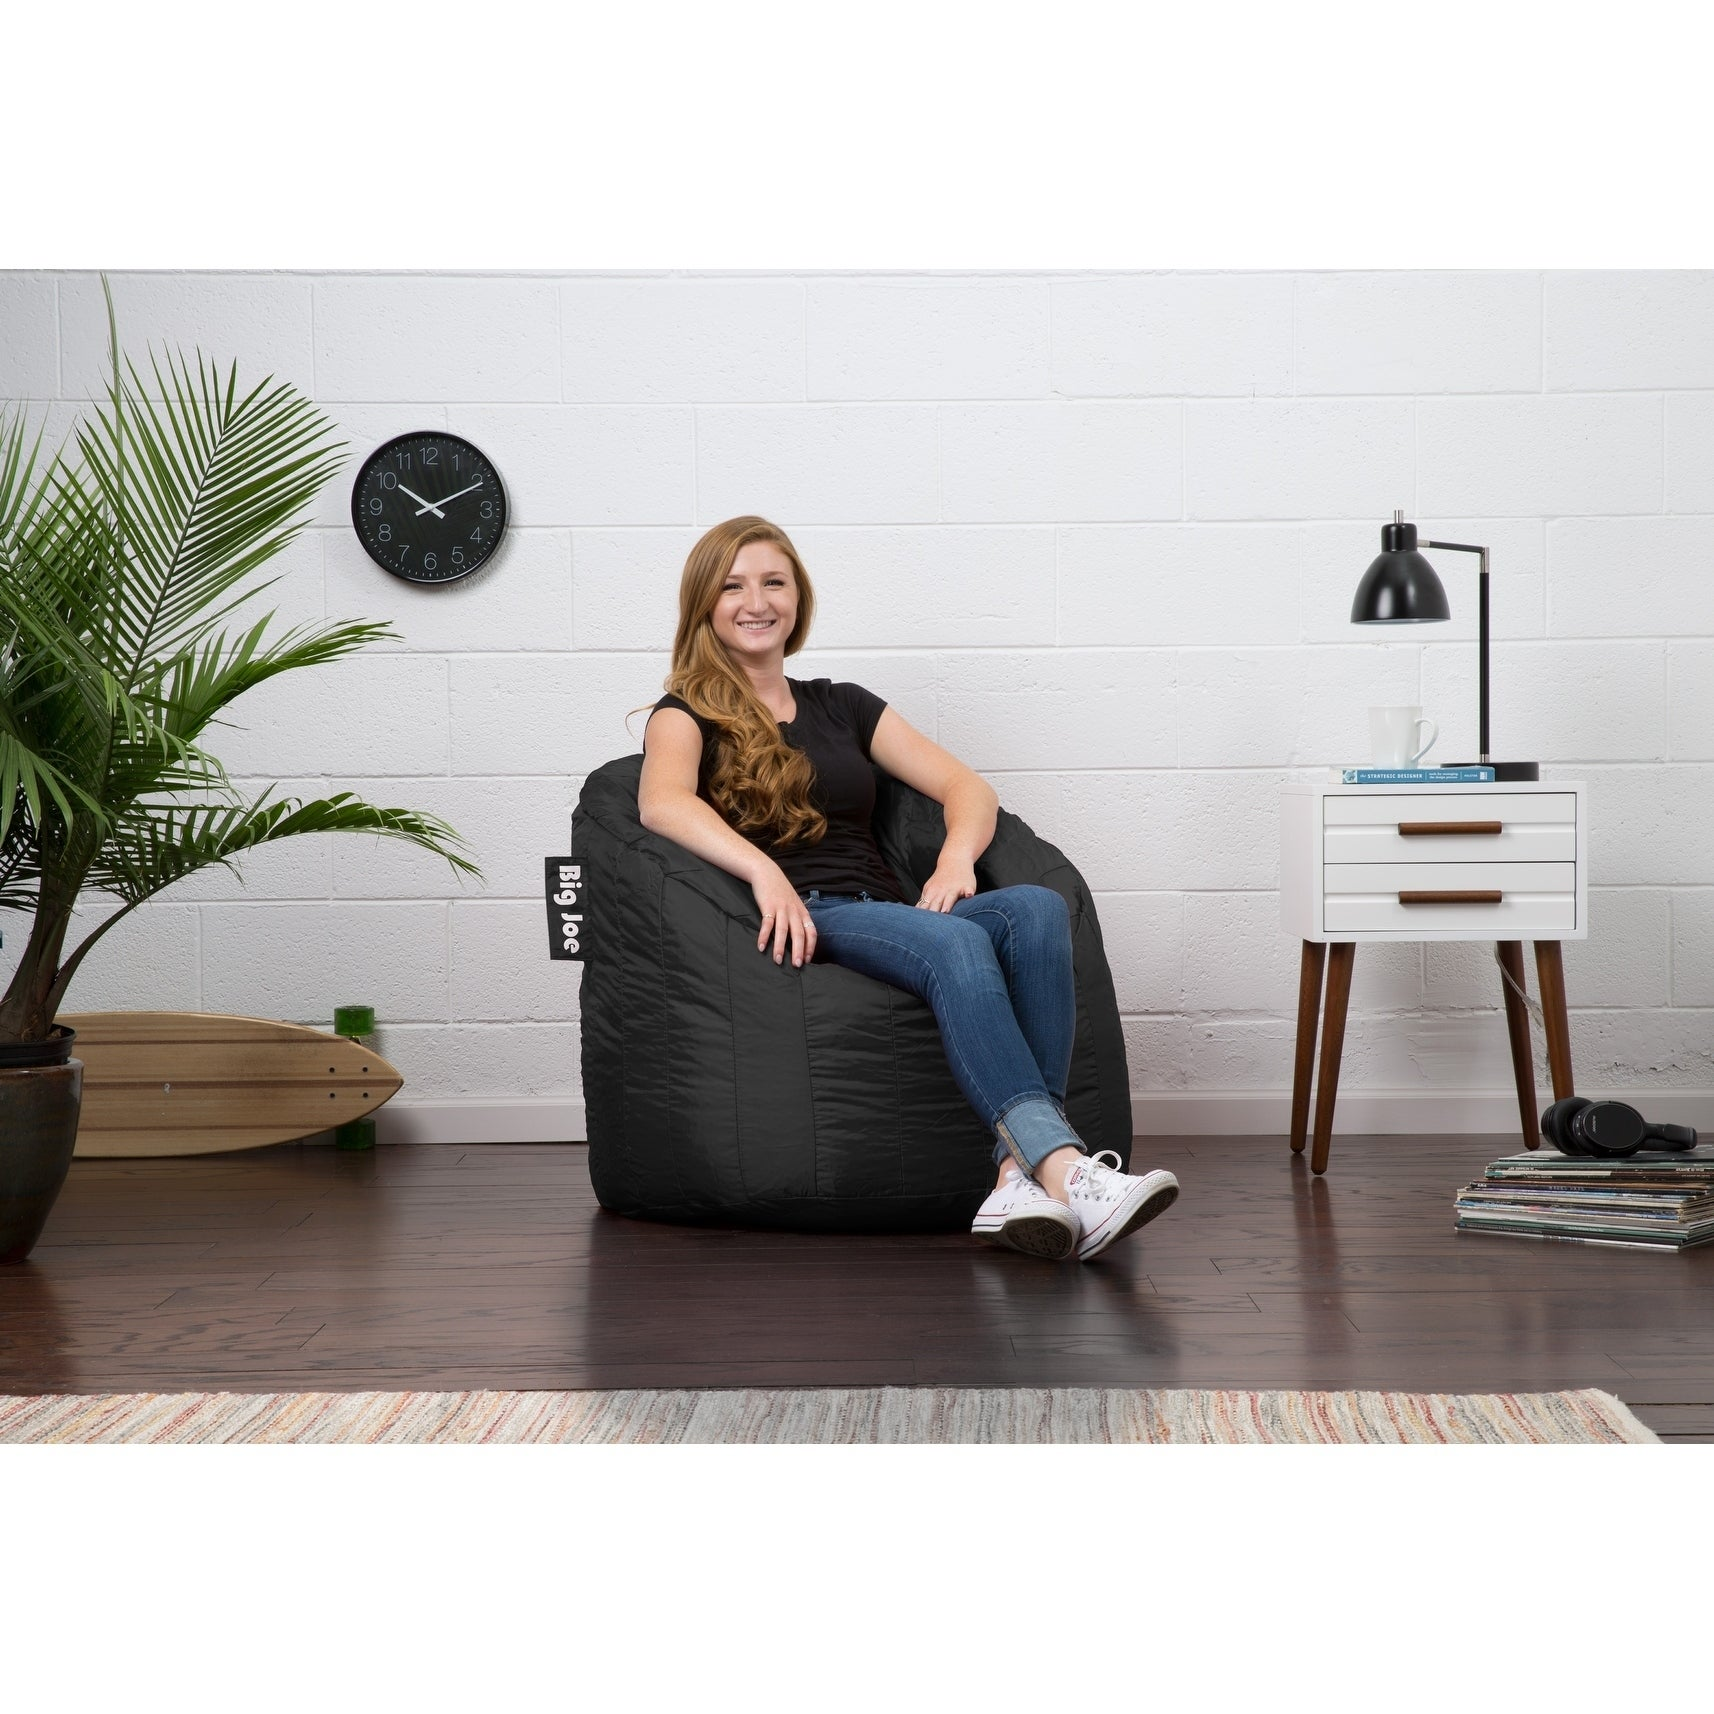 Charmant Shop Big Joe Lumin Bean Bag Chair, Multiple Colors   Free Shipping Today    Overstock.com   20750115